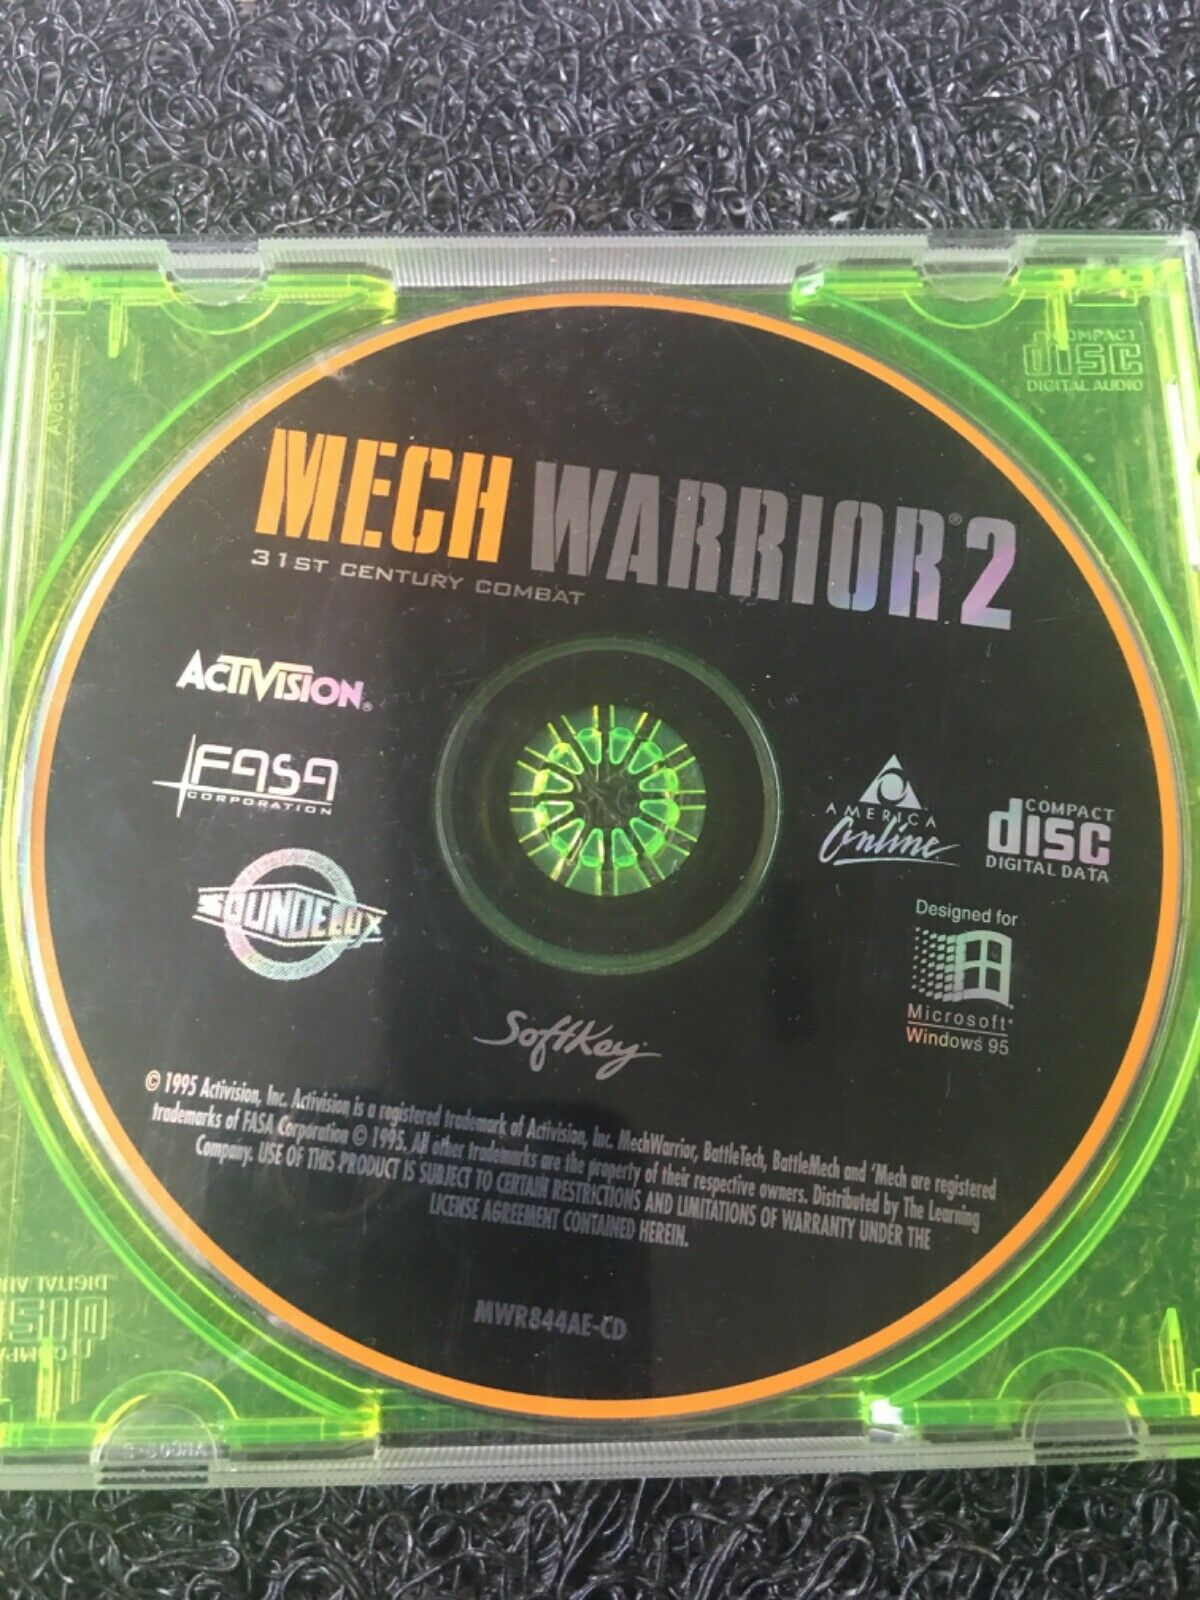 Computer Games - MECH WARRIOR 2 PC CD Computer Game Disc Only